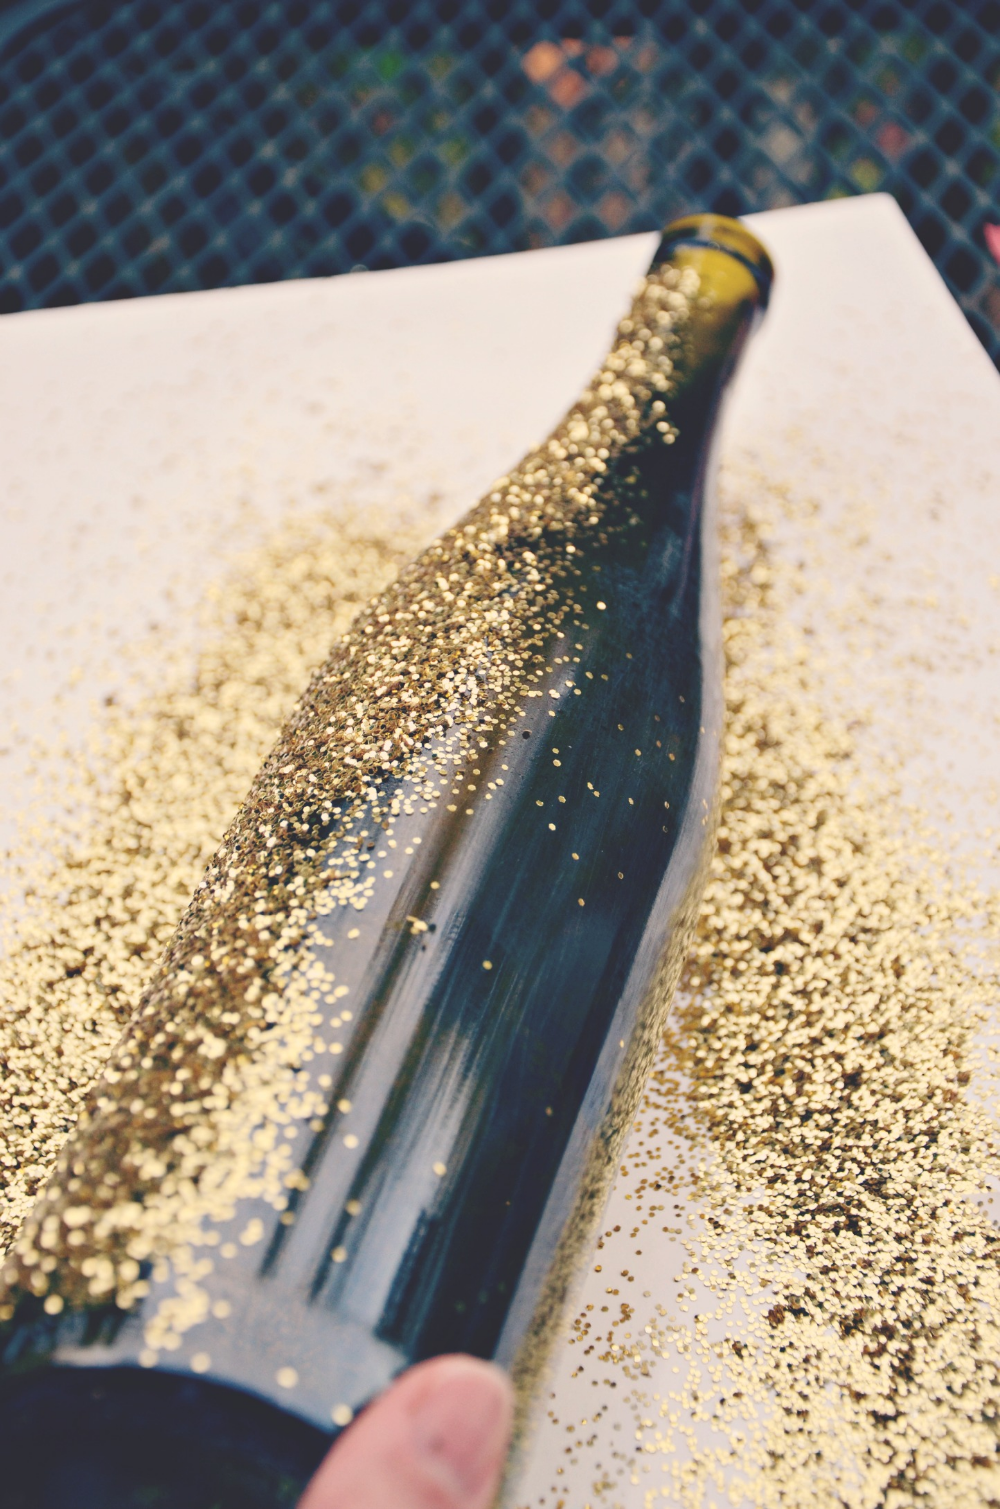 Tutorial for DIY Glittered Wine Bottles is part of Glitter wine bottles, Glitter wine, Wine bottle diy, Wine bottle diy crafts, Wine bottle crafts, Bottle crafts - Getting glittered wine bottles is as easy as 1, 2, 3! In a few easy steps, anyone can glitterup a wine bottle  This method also works for other glass too!